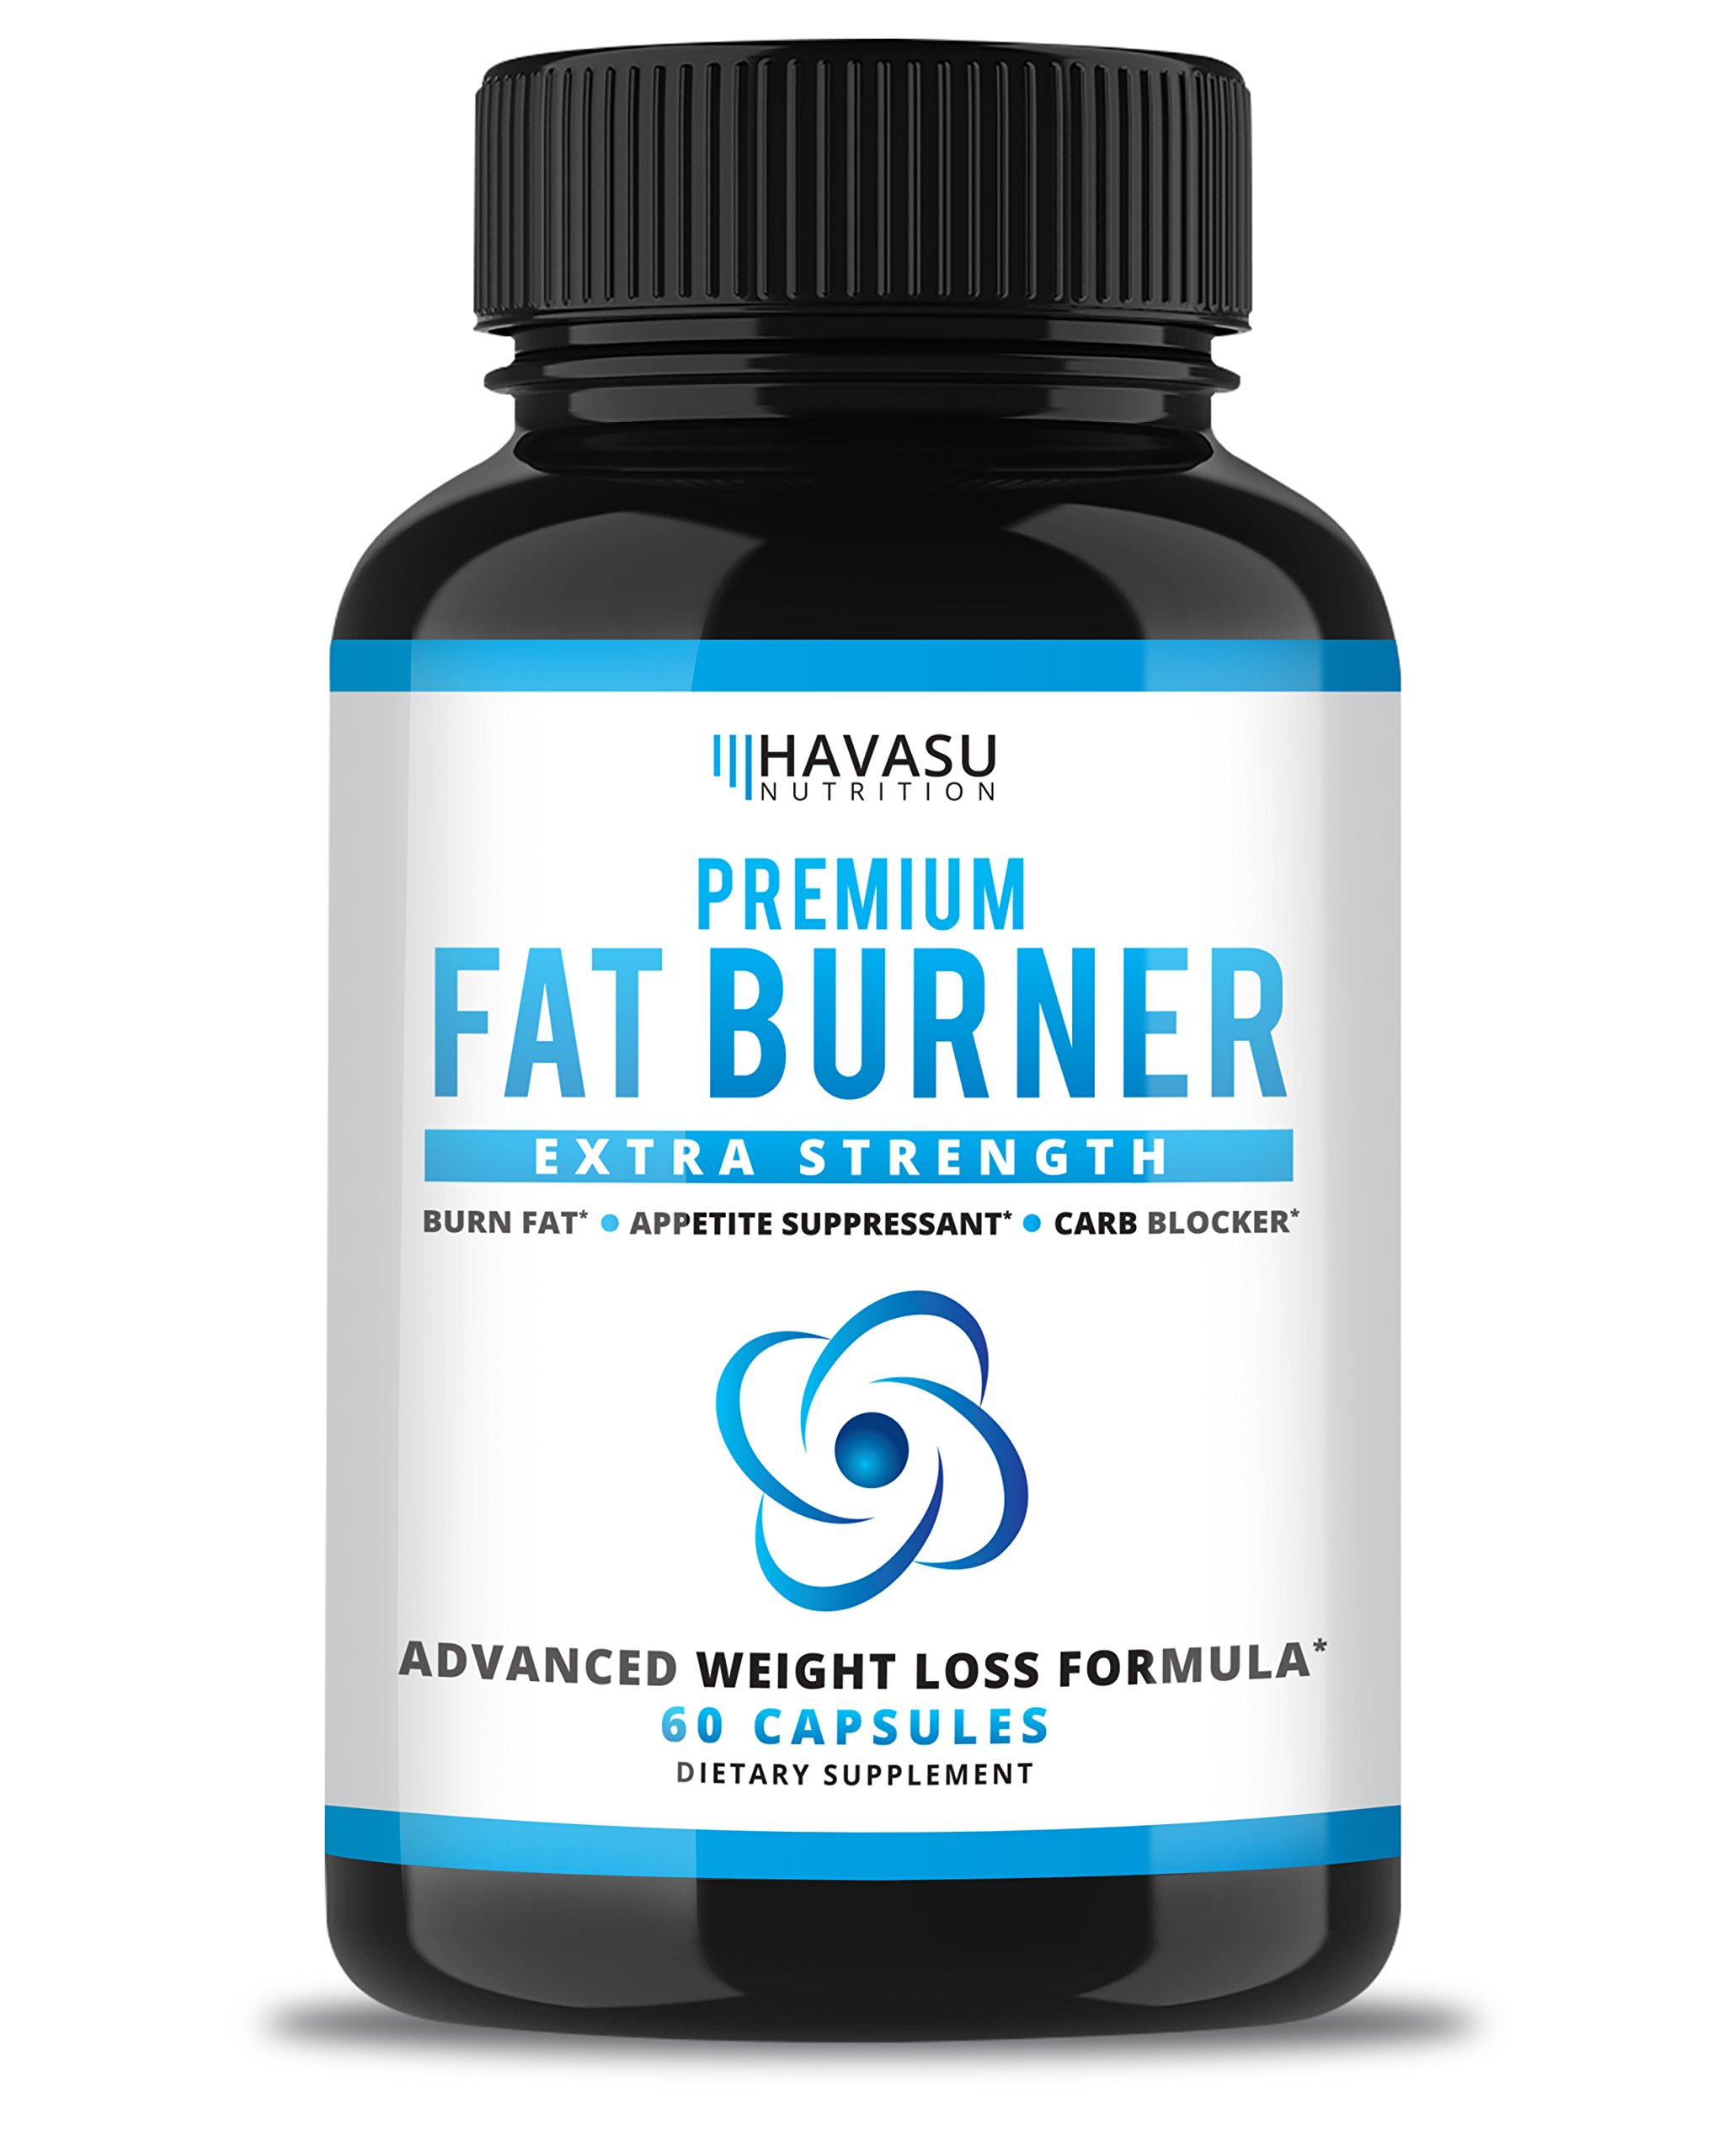 Havasu Nutrition Extra Strength Weight Loss Pills and Keto Appetite Suppressant - CLA, Green Tea Extract, Apple Cider Vinegar, White Kidney Beans - Fat Burner & Metabolism Booster, 60 Capsules by Havasu Nutrition